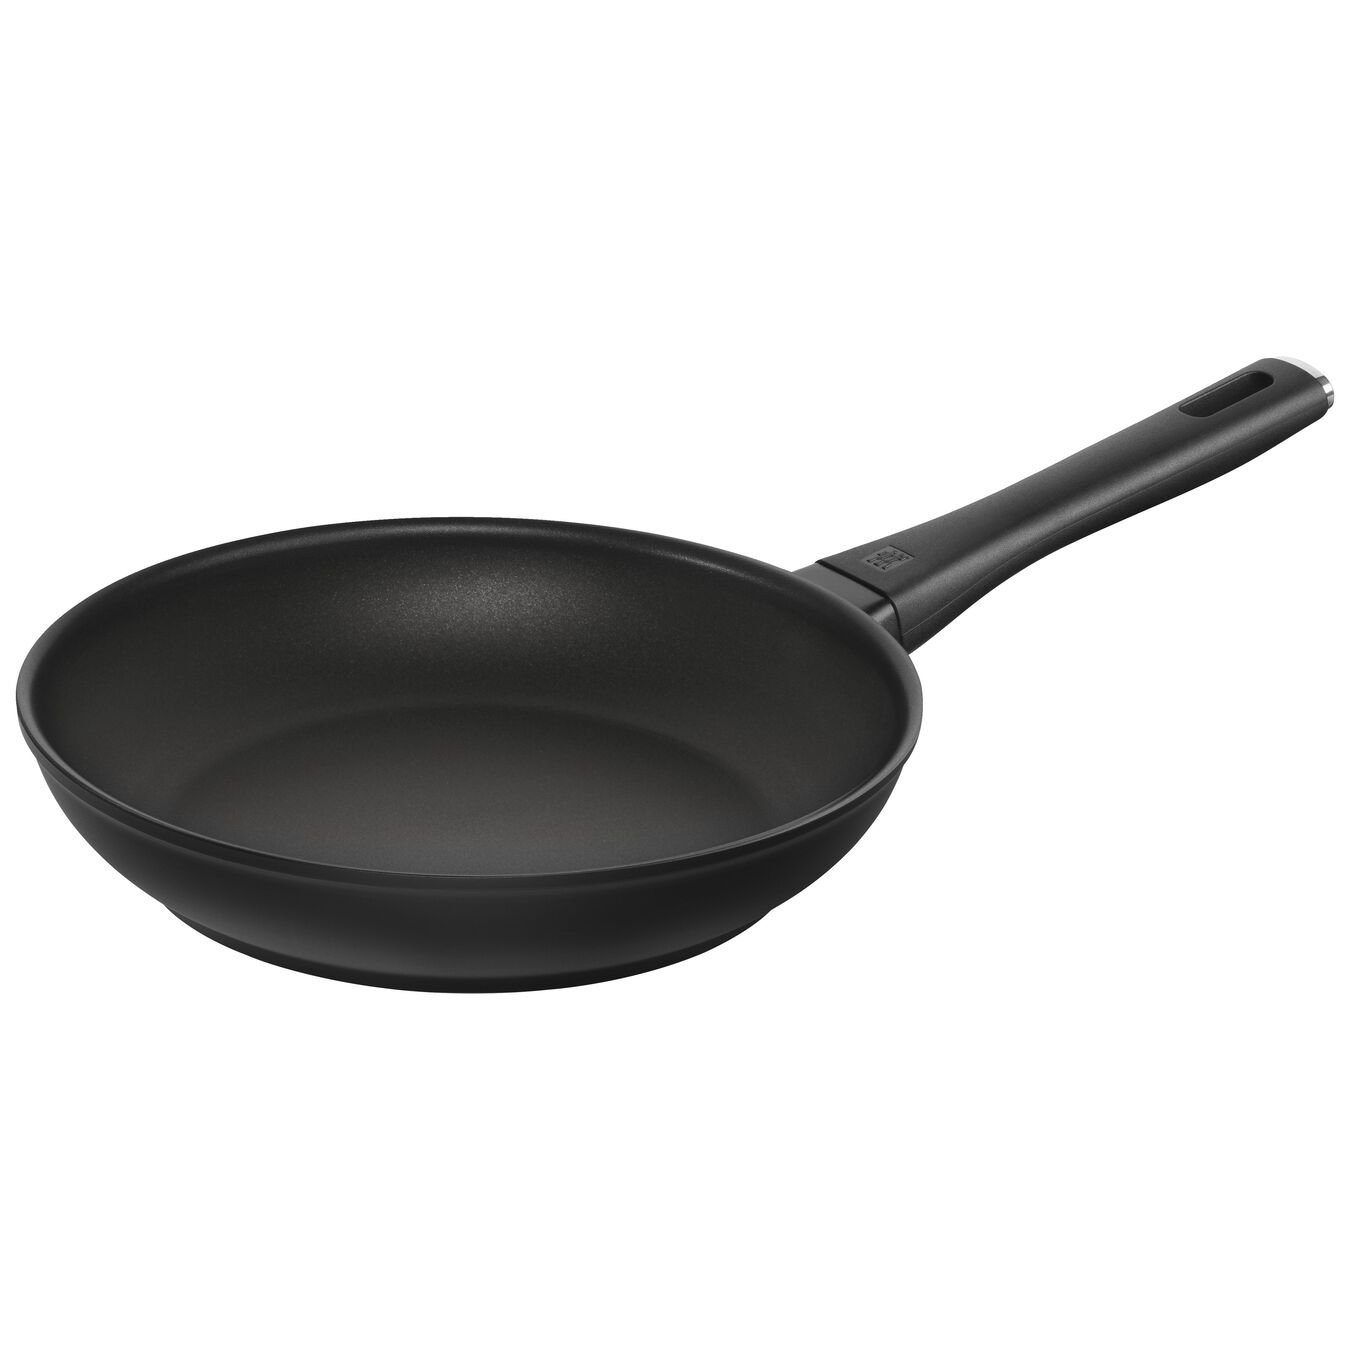 9.5-inch, Non-stick, Frying pan,,large 4